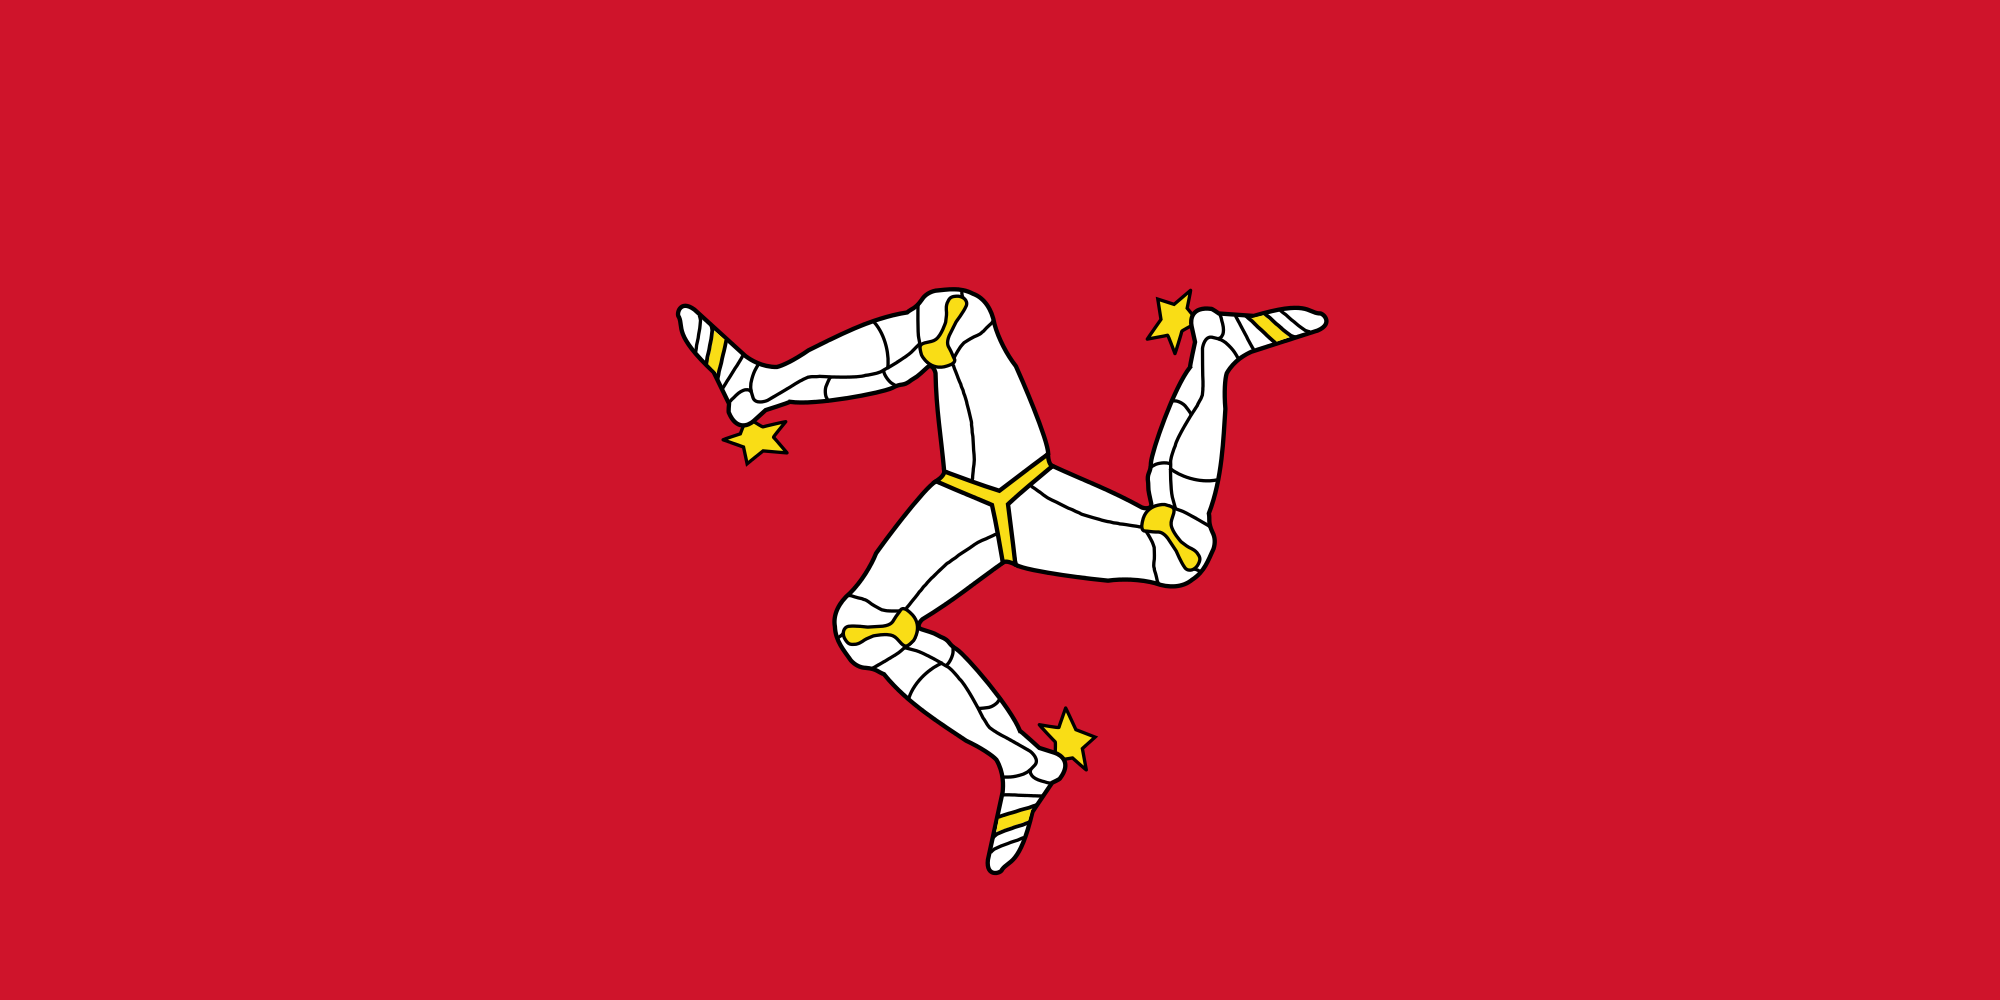 Isle Of man, Land, Emblem, Logo, Symbol - Wallpaper HD - Prof.-falken.com